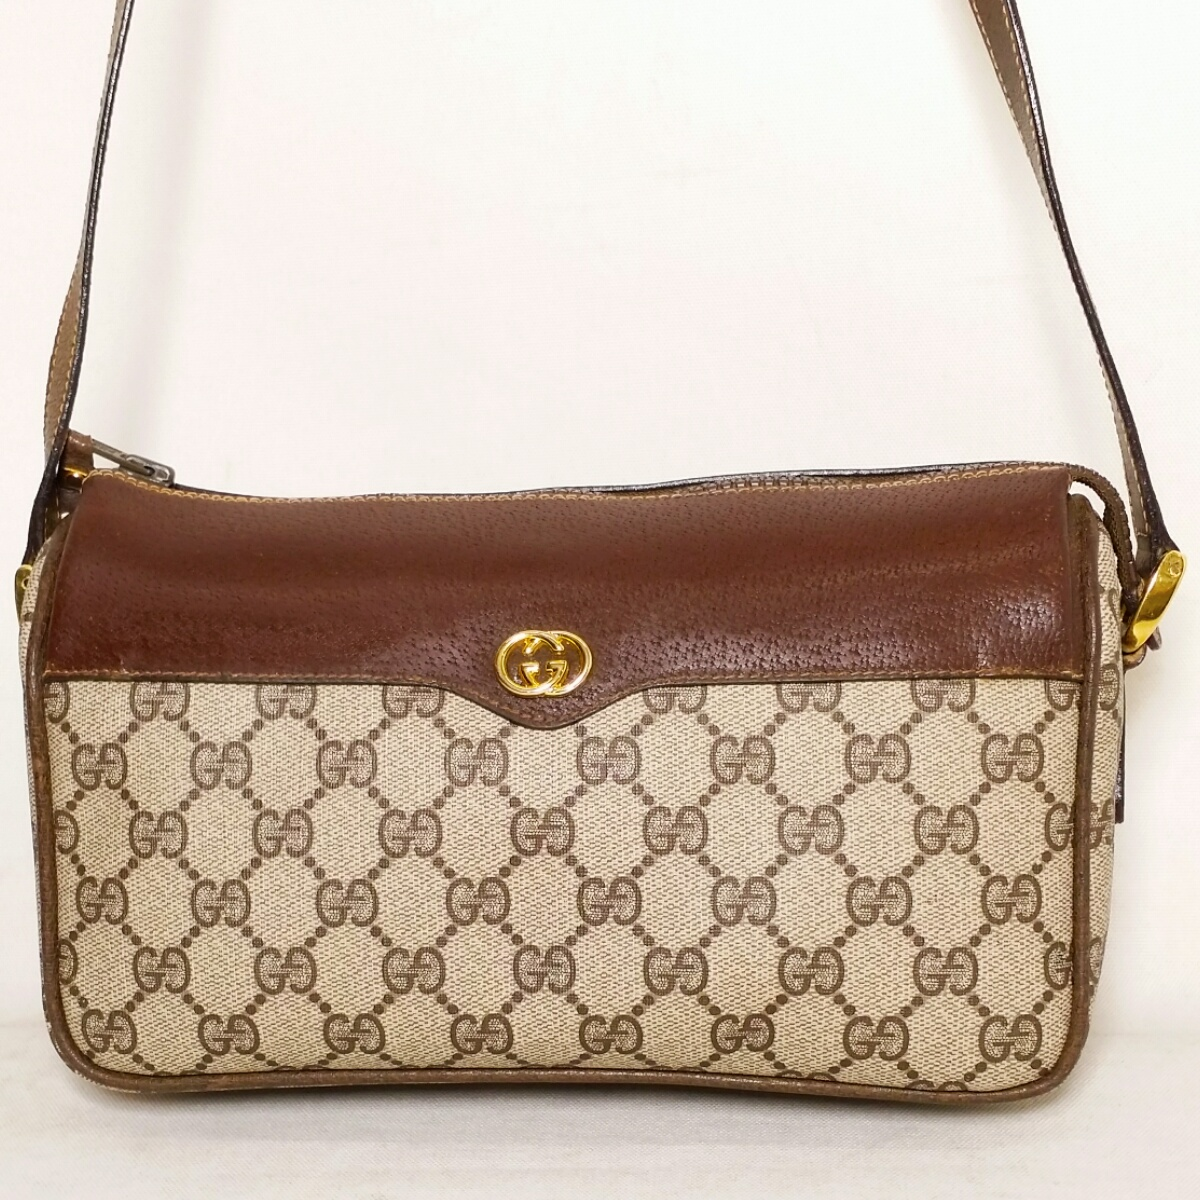 fb6a9171c6d51f It includes a GUCCI Gucci side sherry coating GG VINTAGE ヴンテージショルダー BAG bag  OLD ...